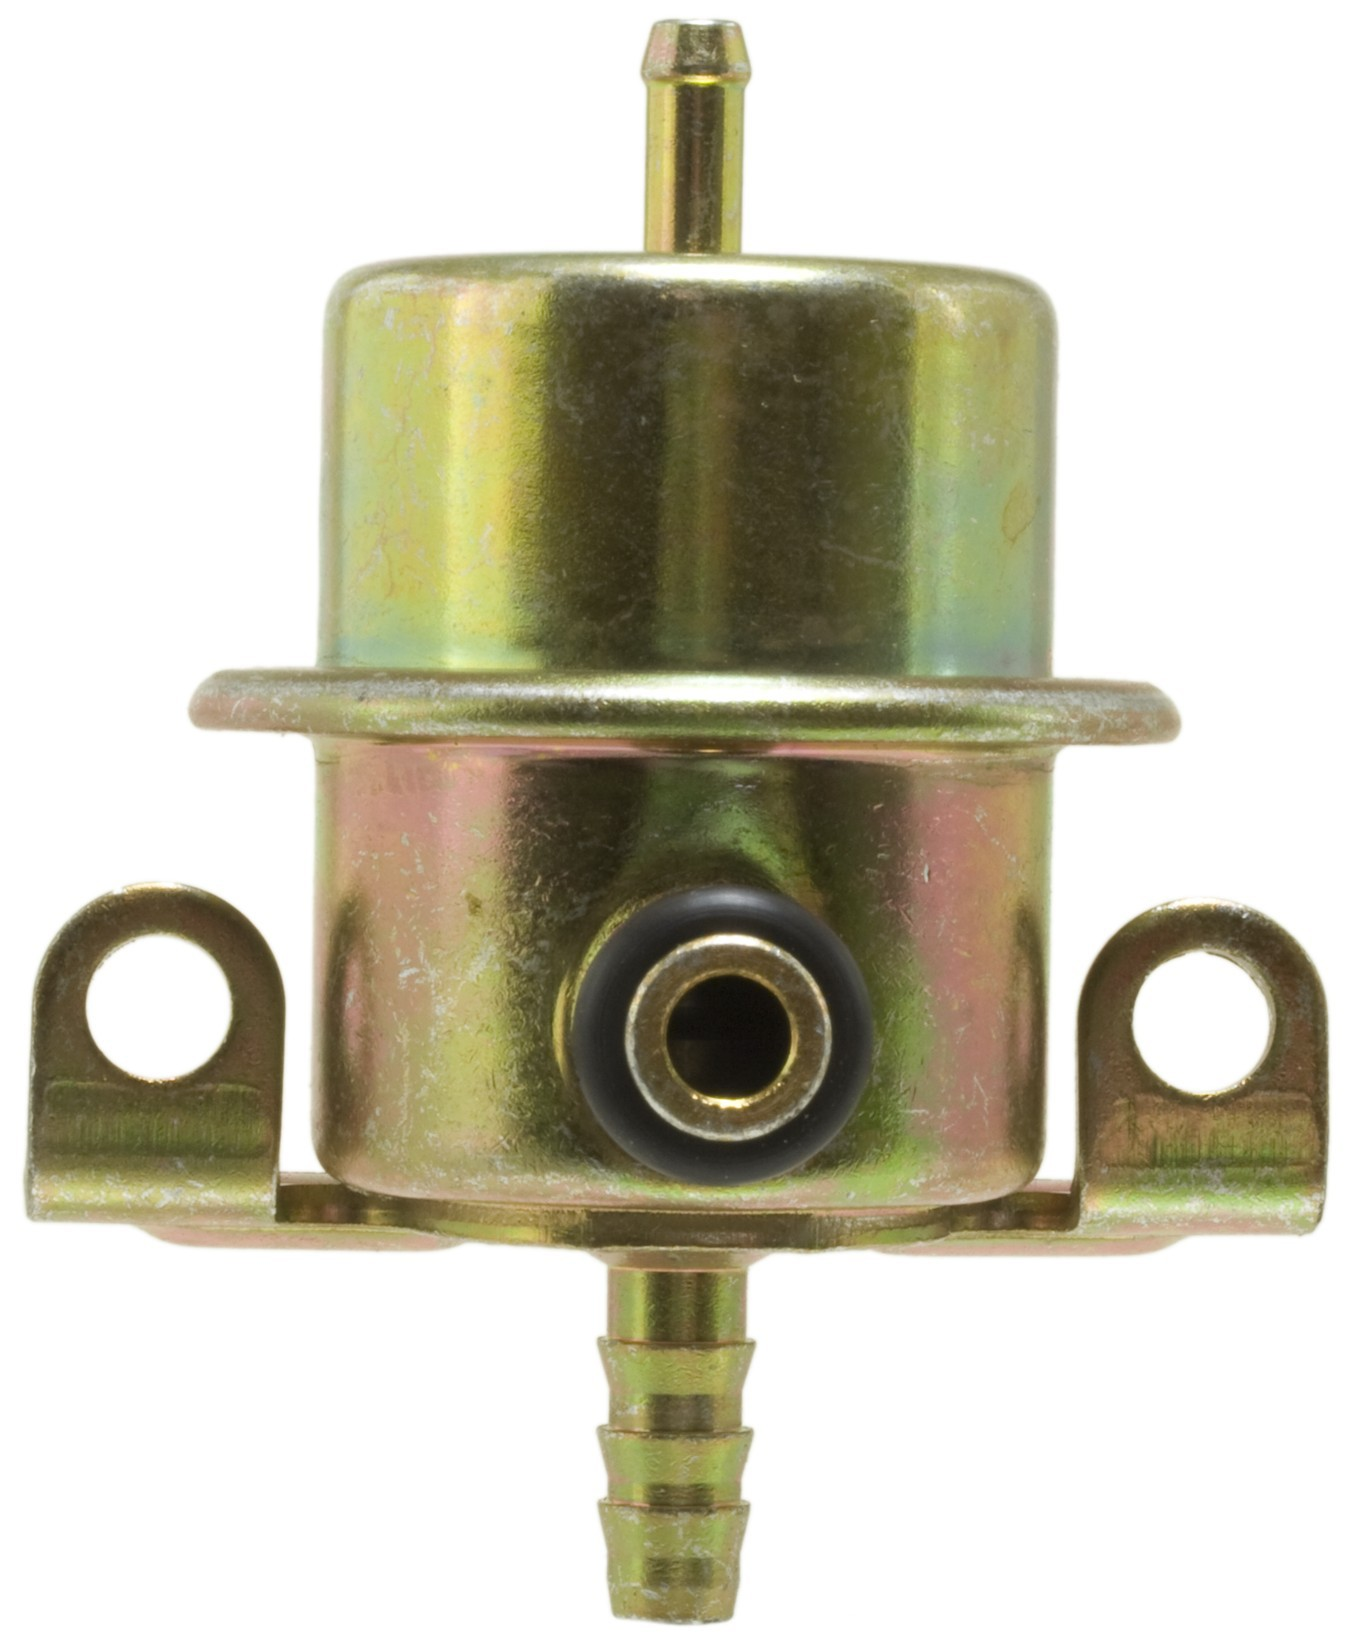 Fuel Injection Pressure Regulator Advantech 8m4 Fits 86